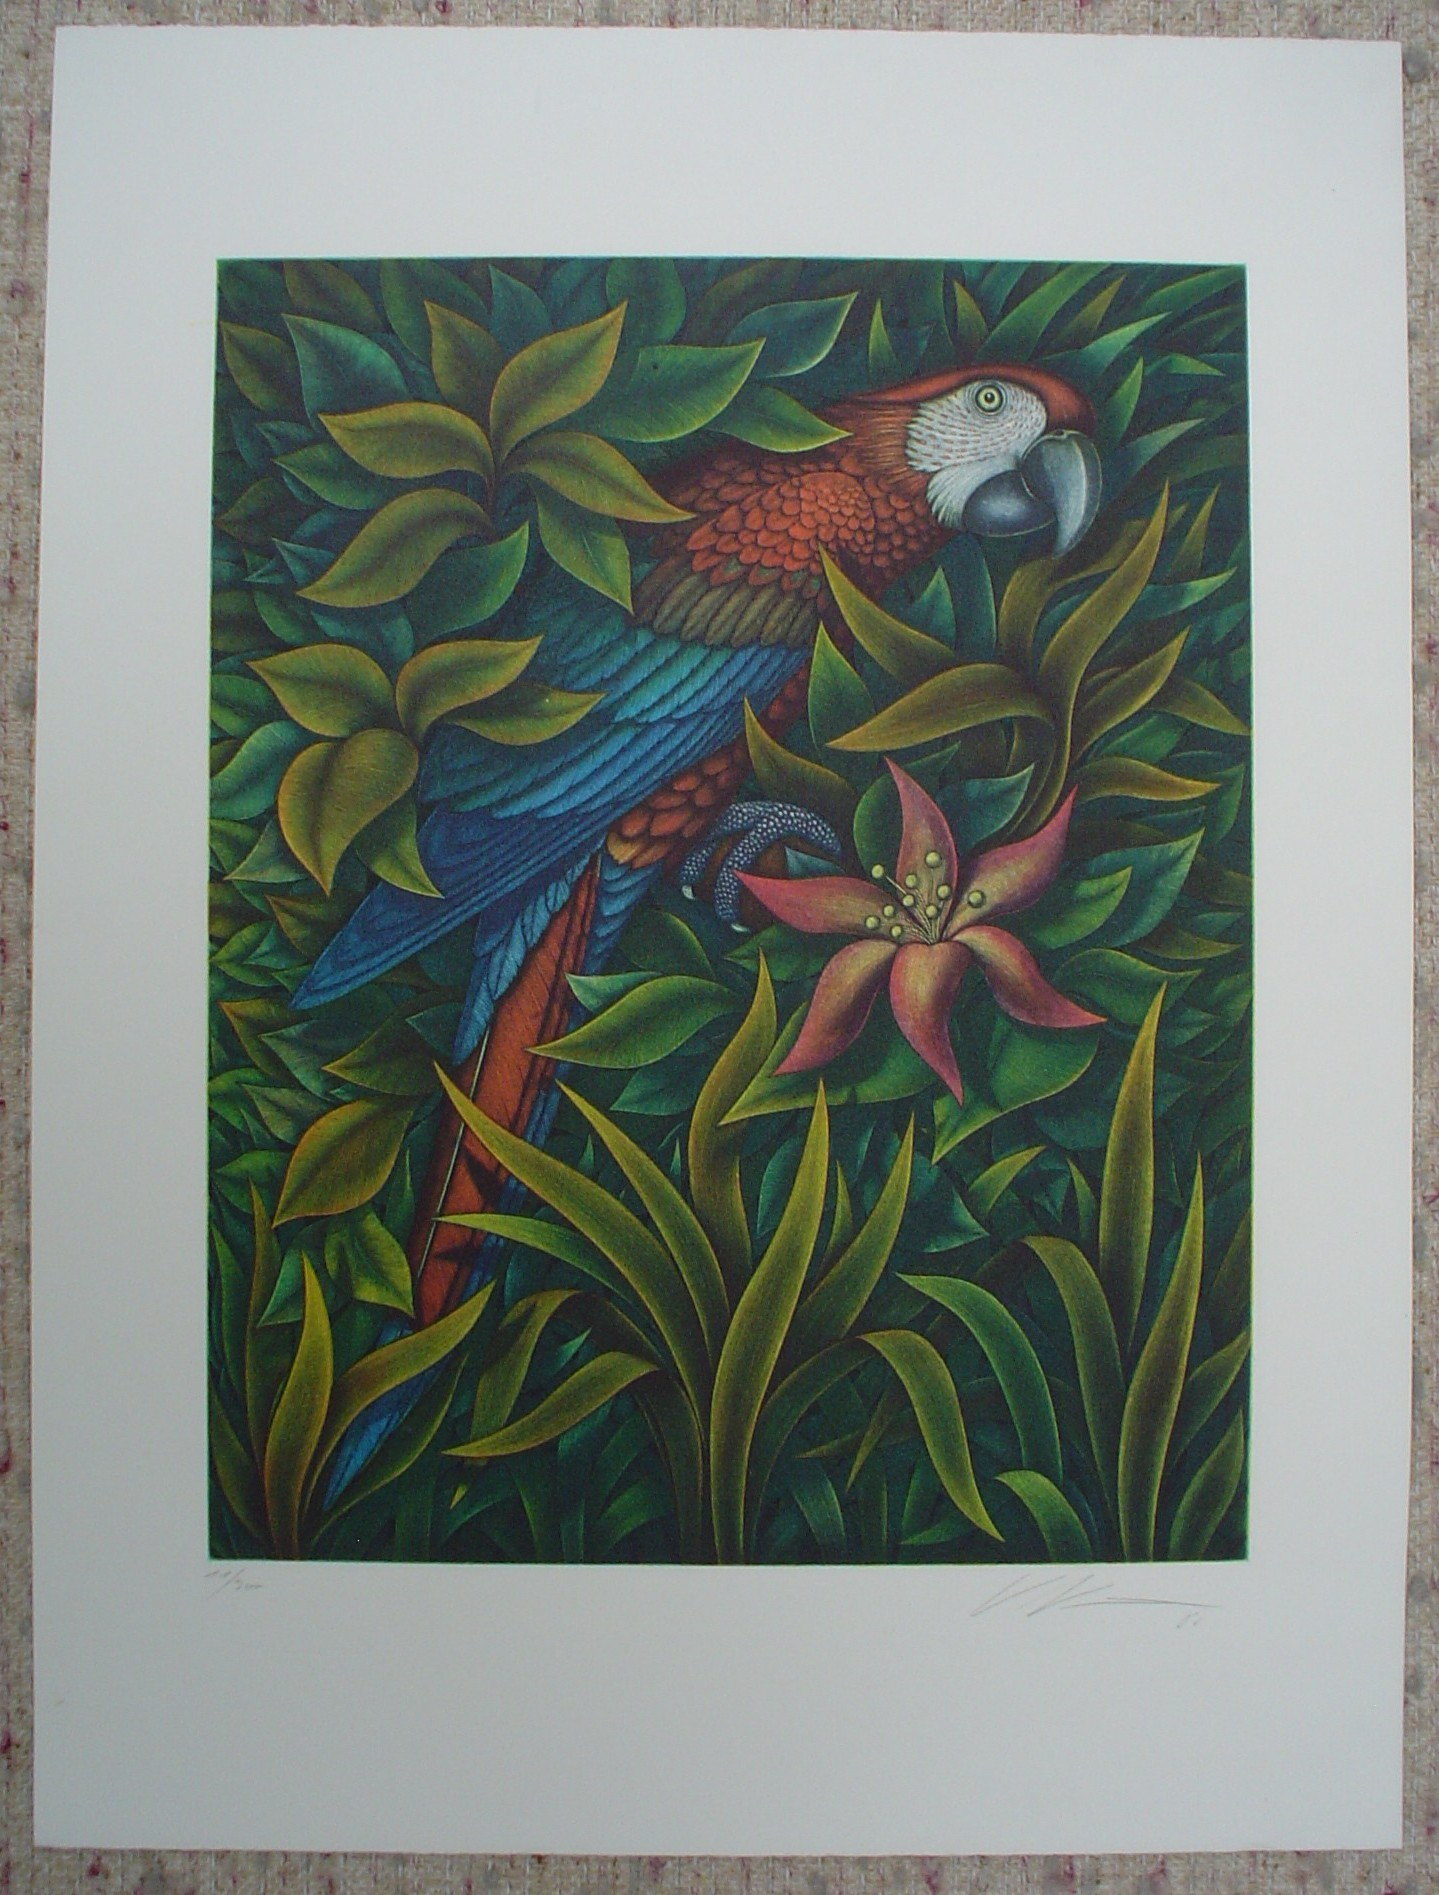 Macaw by Volker Kühn (ie. Volker Kuehn), shown with full margins - original hand-coloured etching - numbered 11/300, signed and dated '86 in pencil by artist